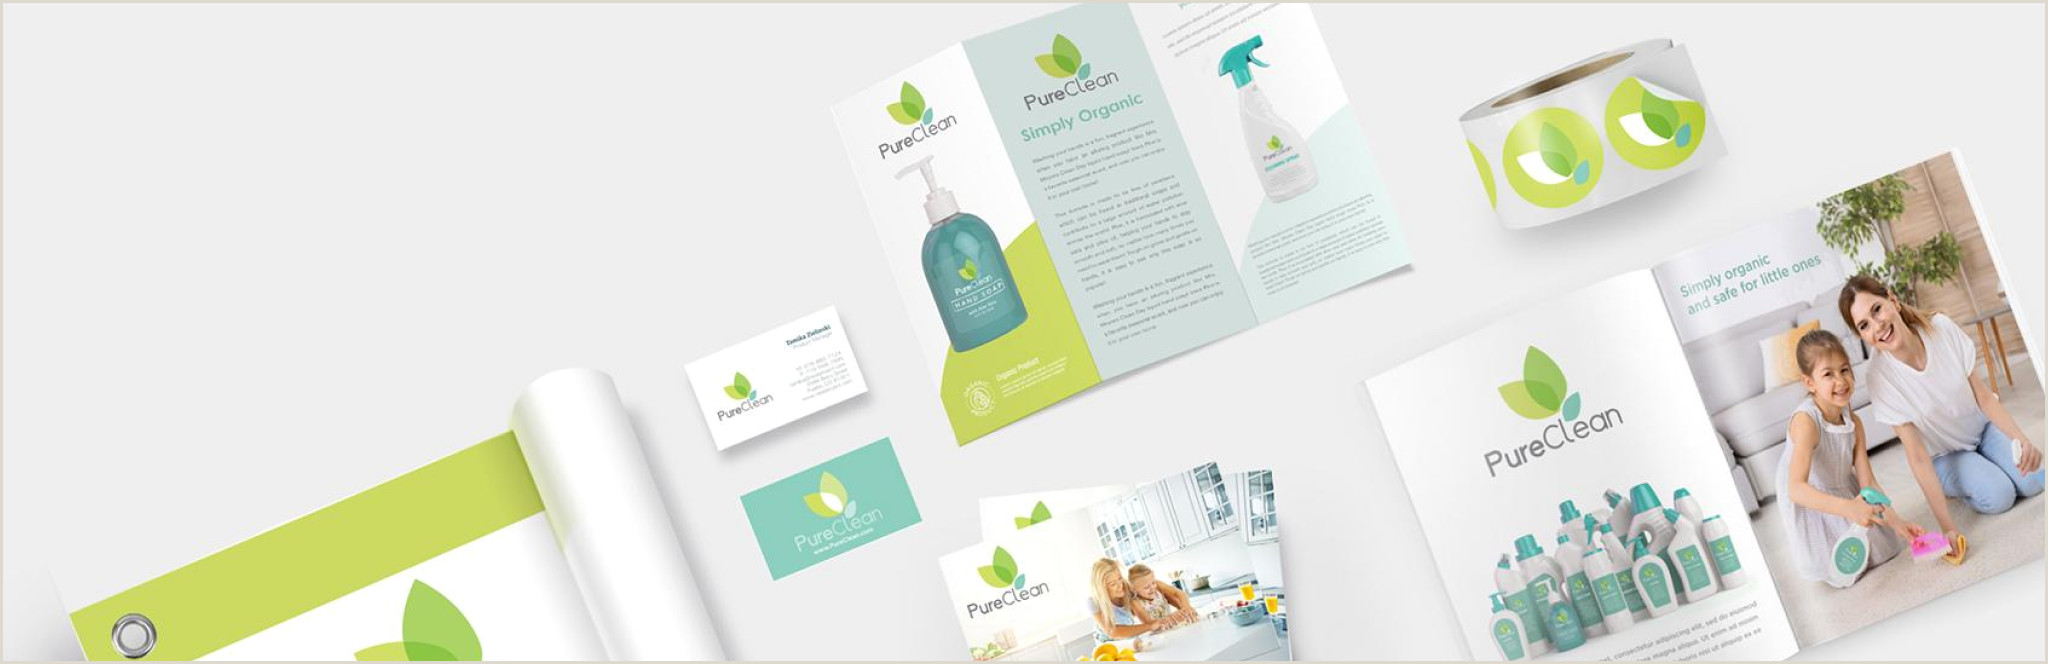 Design My Own Business Cards Free Printplace High Quality Line Printing Services